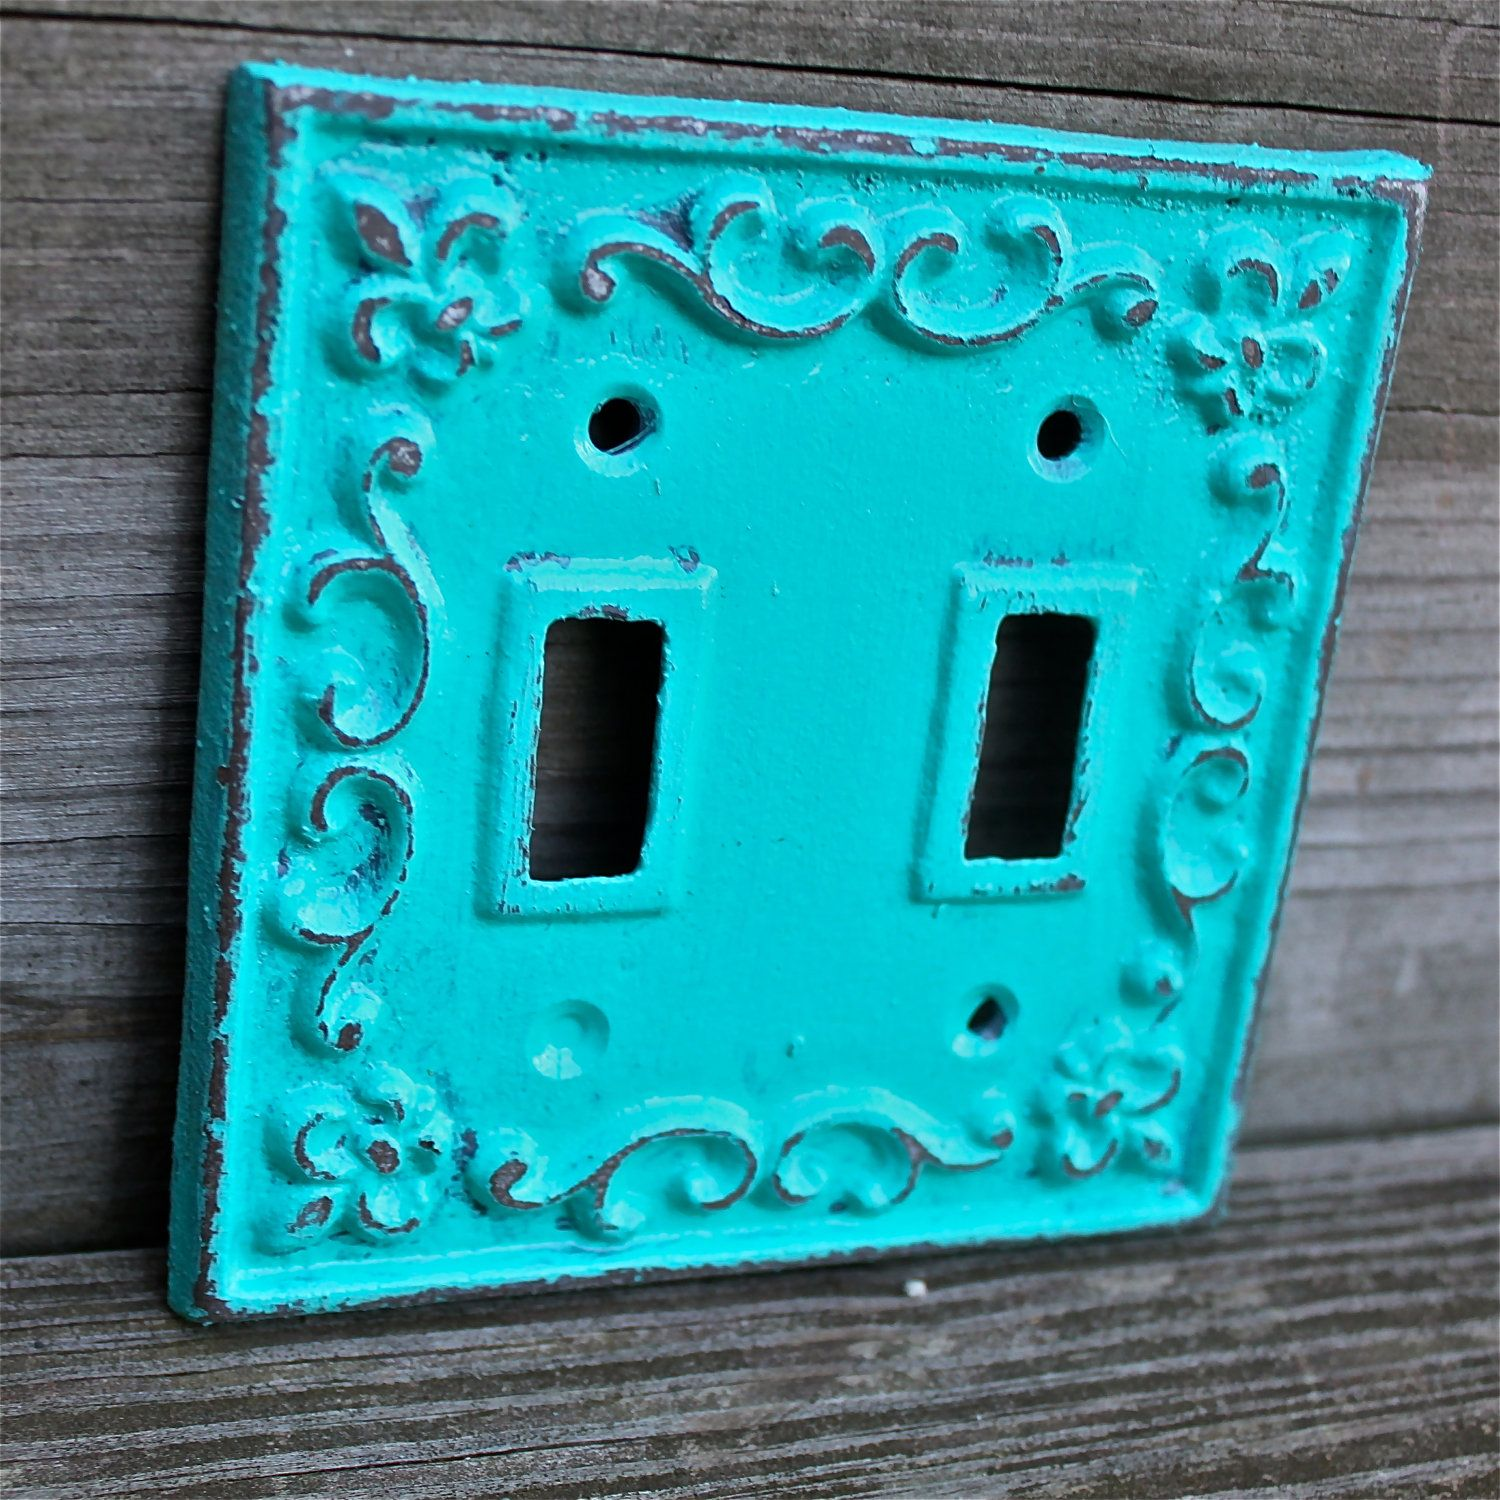 Ornate Switch Plates Teal Decorative Light Switch Plate Double Switch Cover